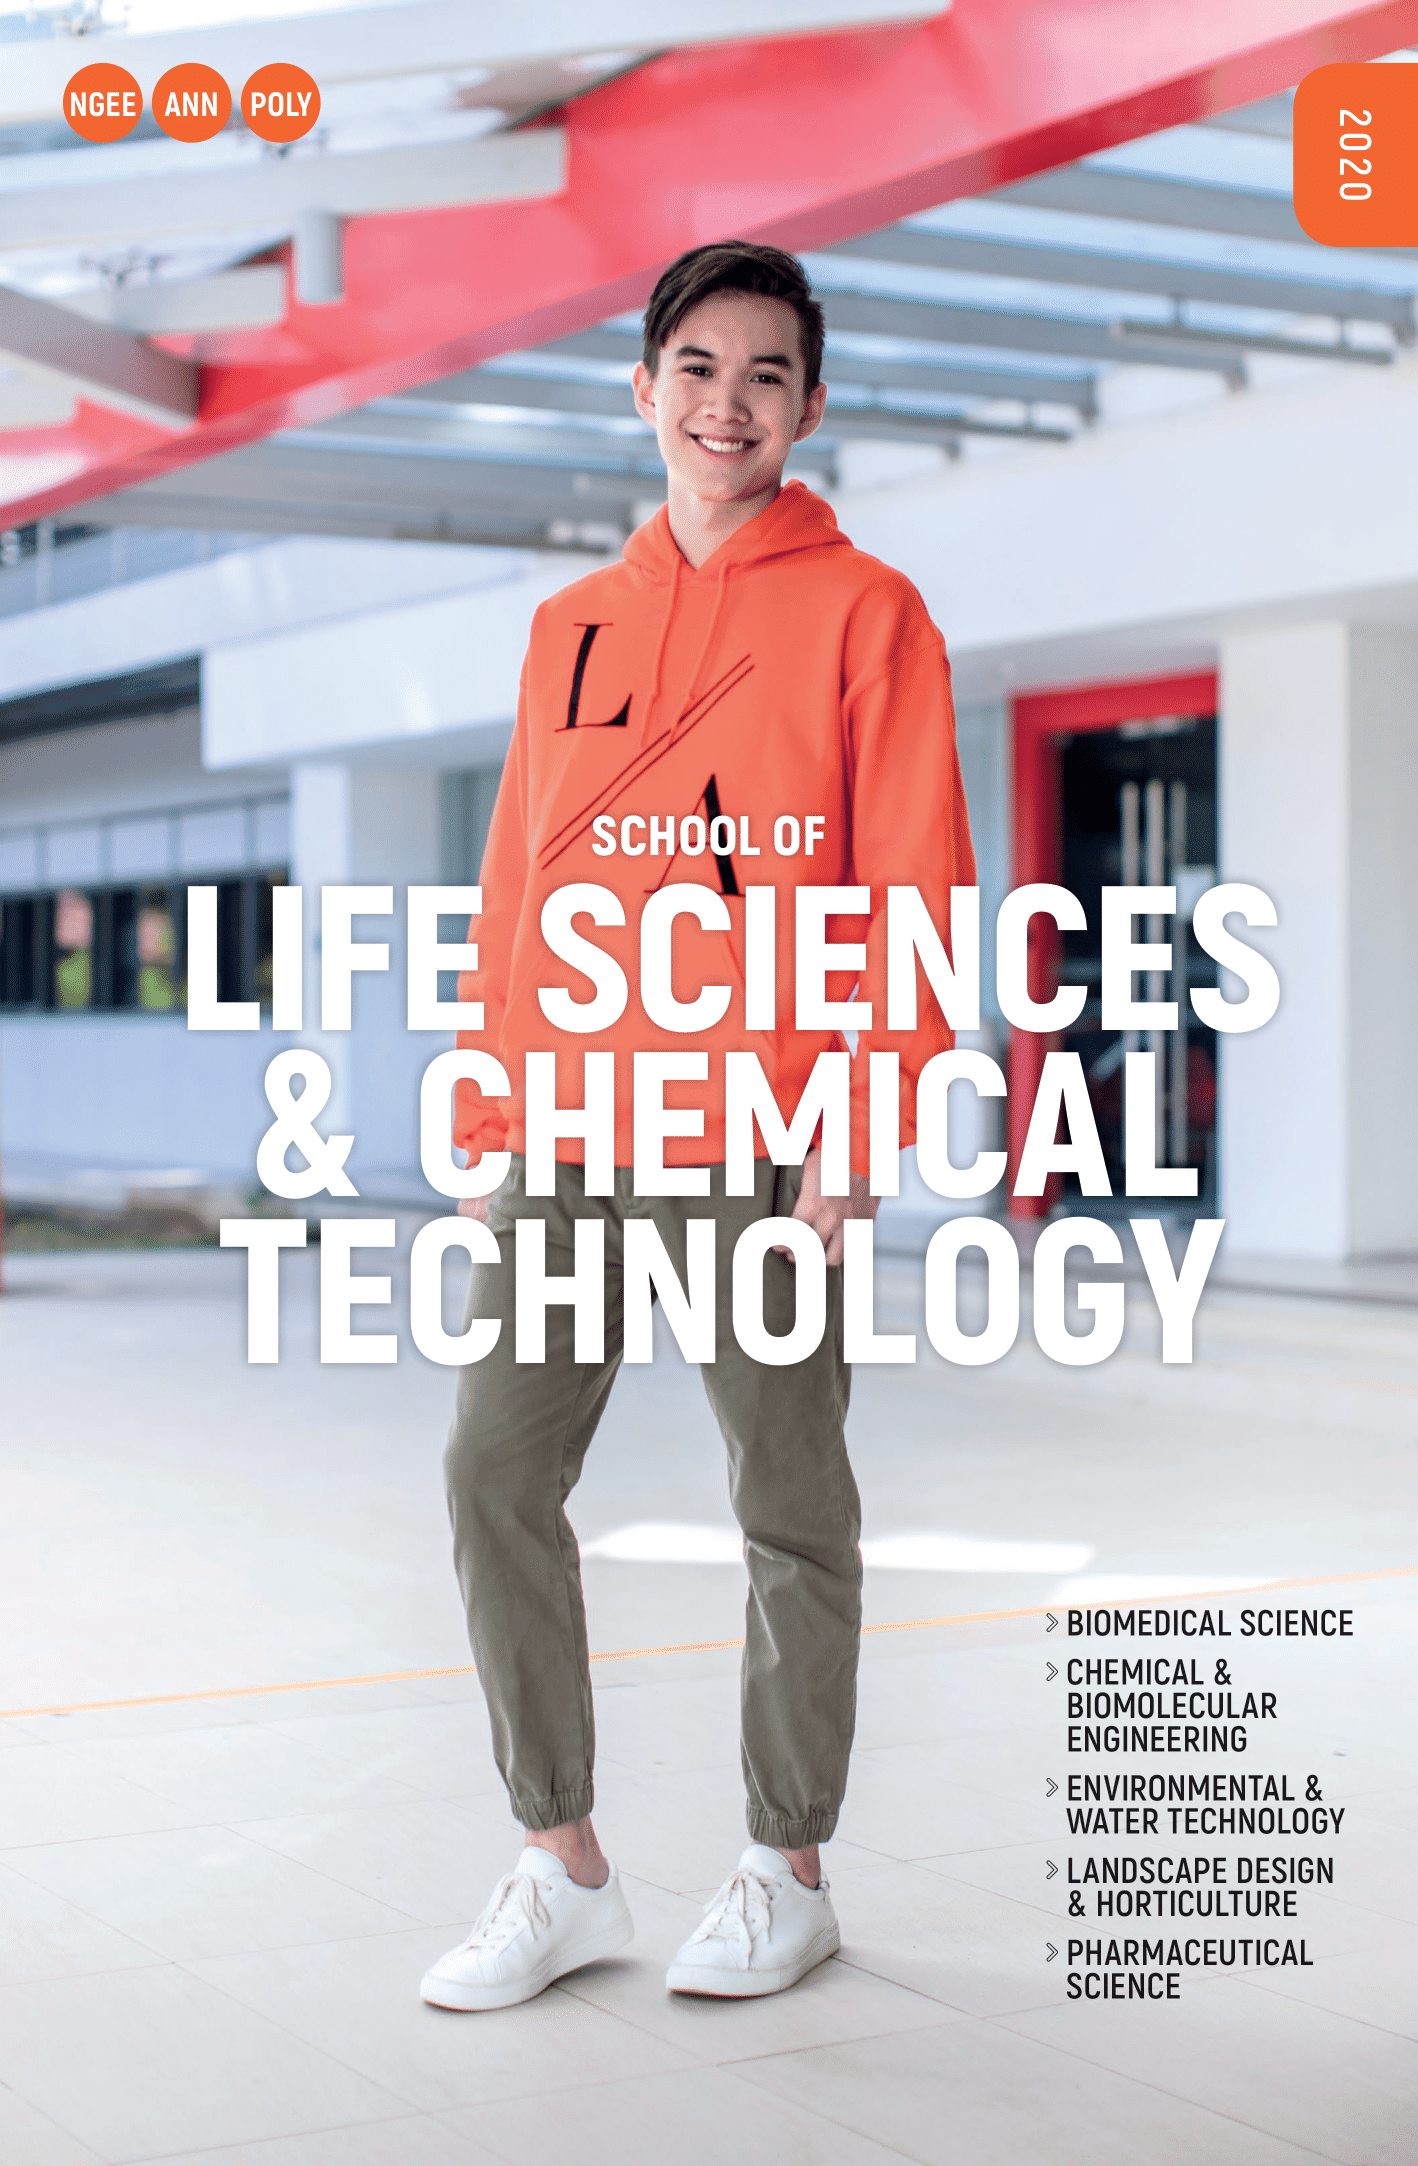 School of Life Sciences and Chemical Technology 2020-01